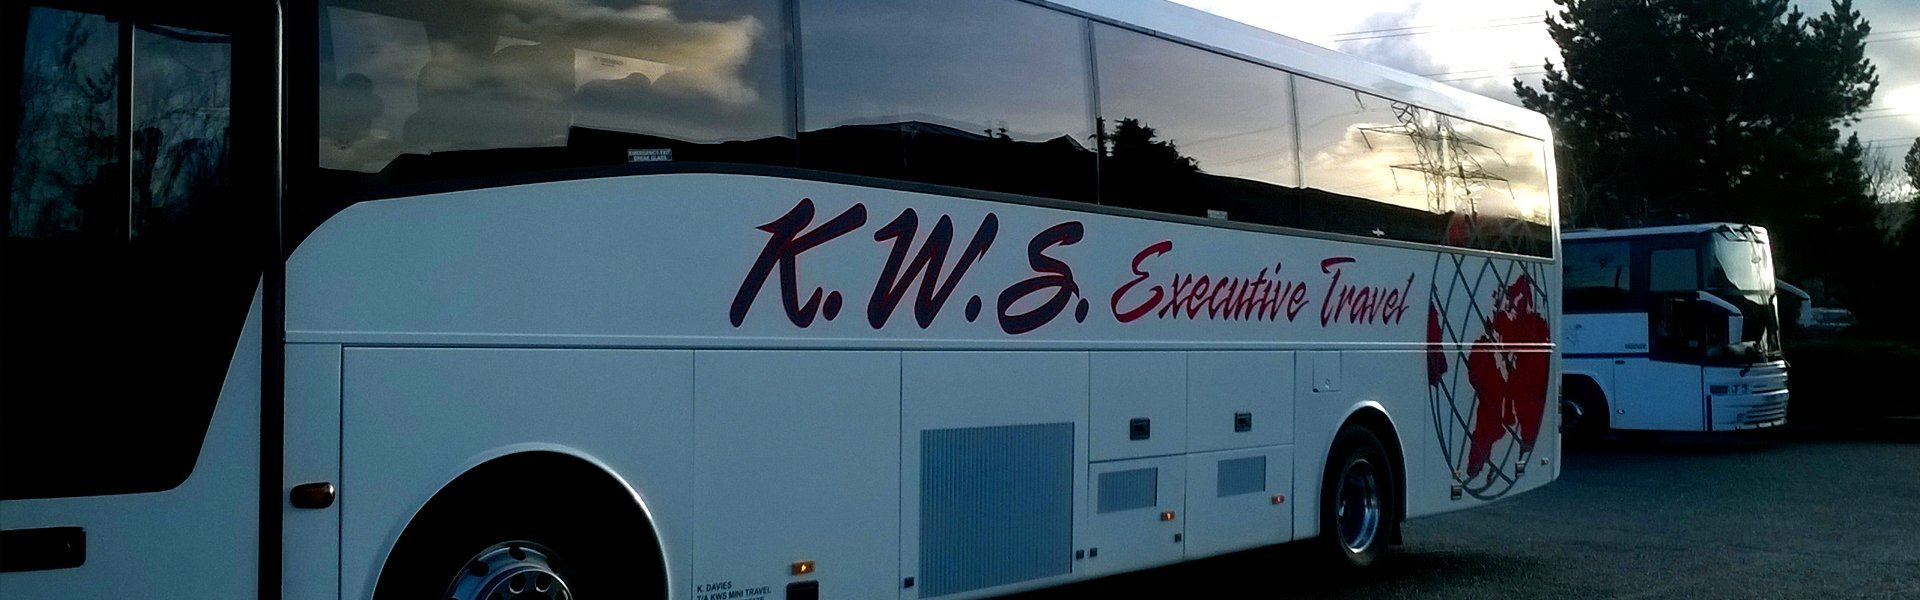 coach hire for wedding